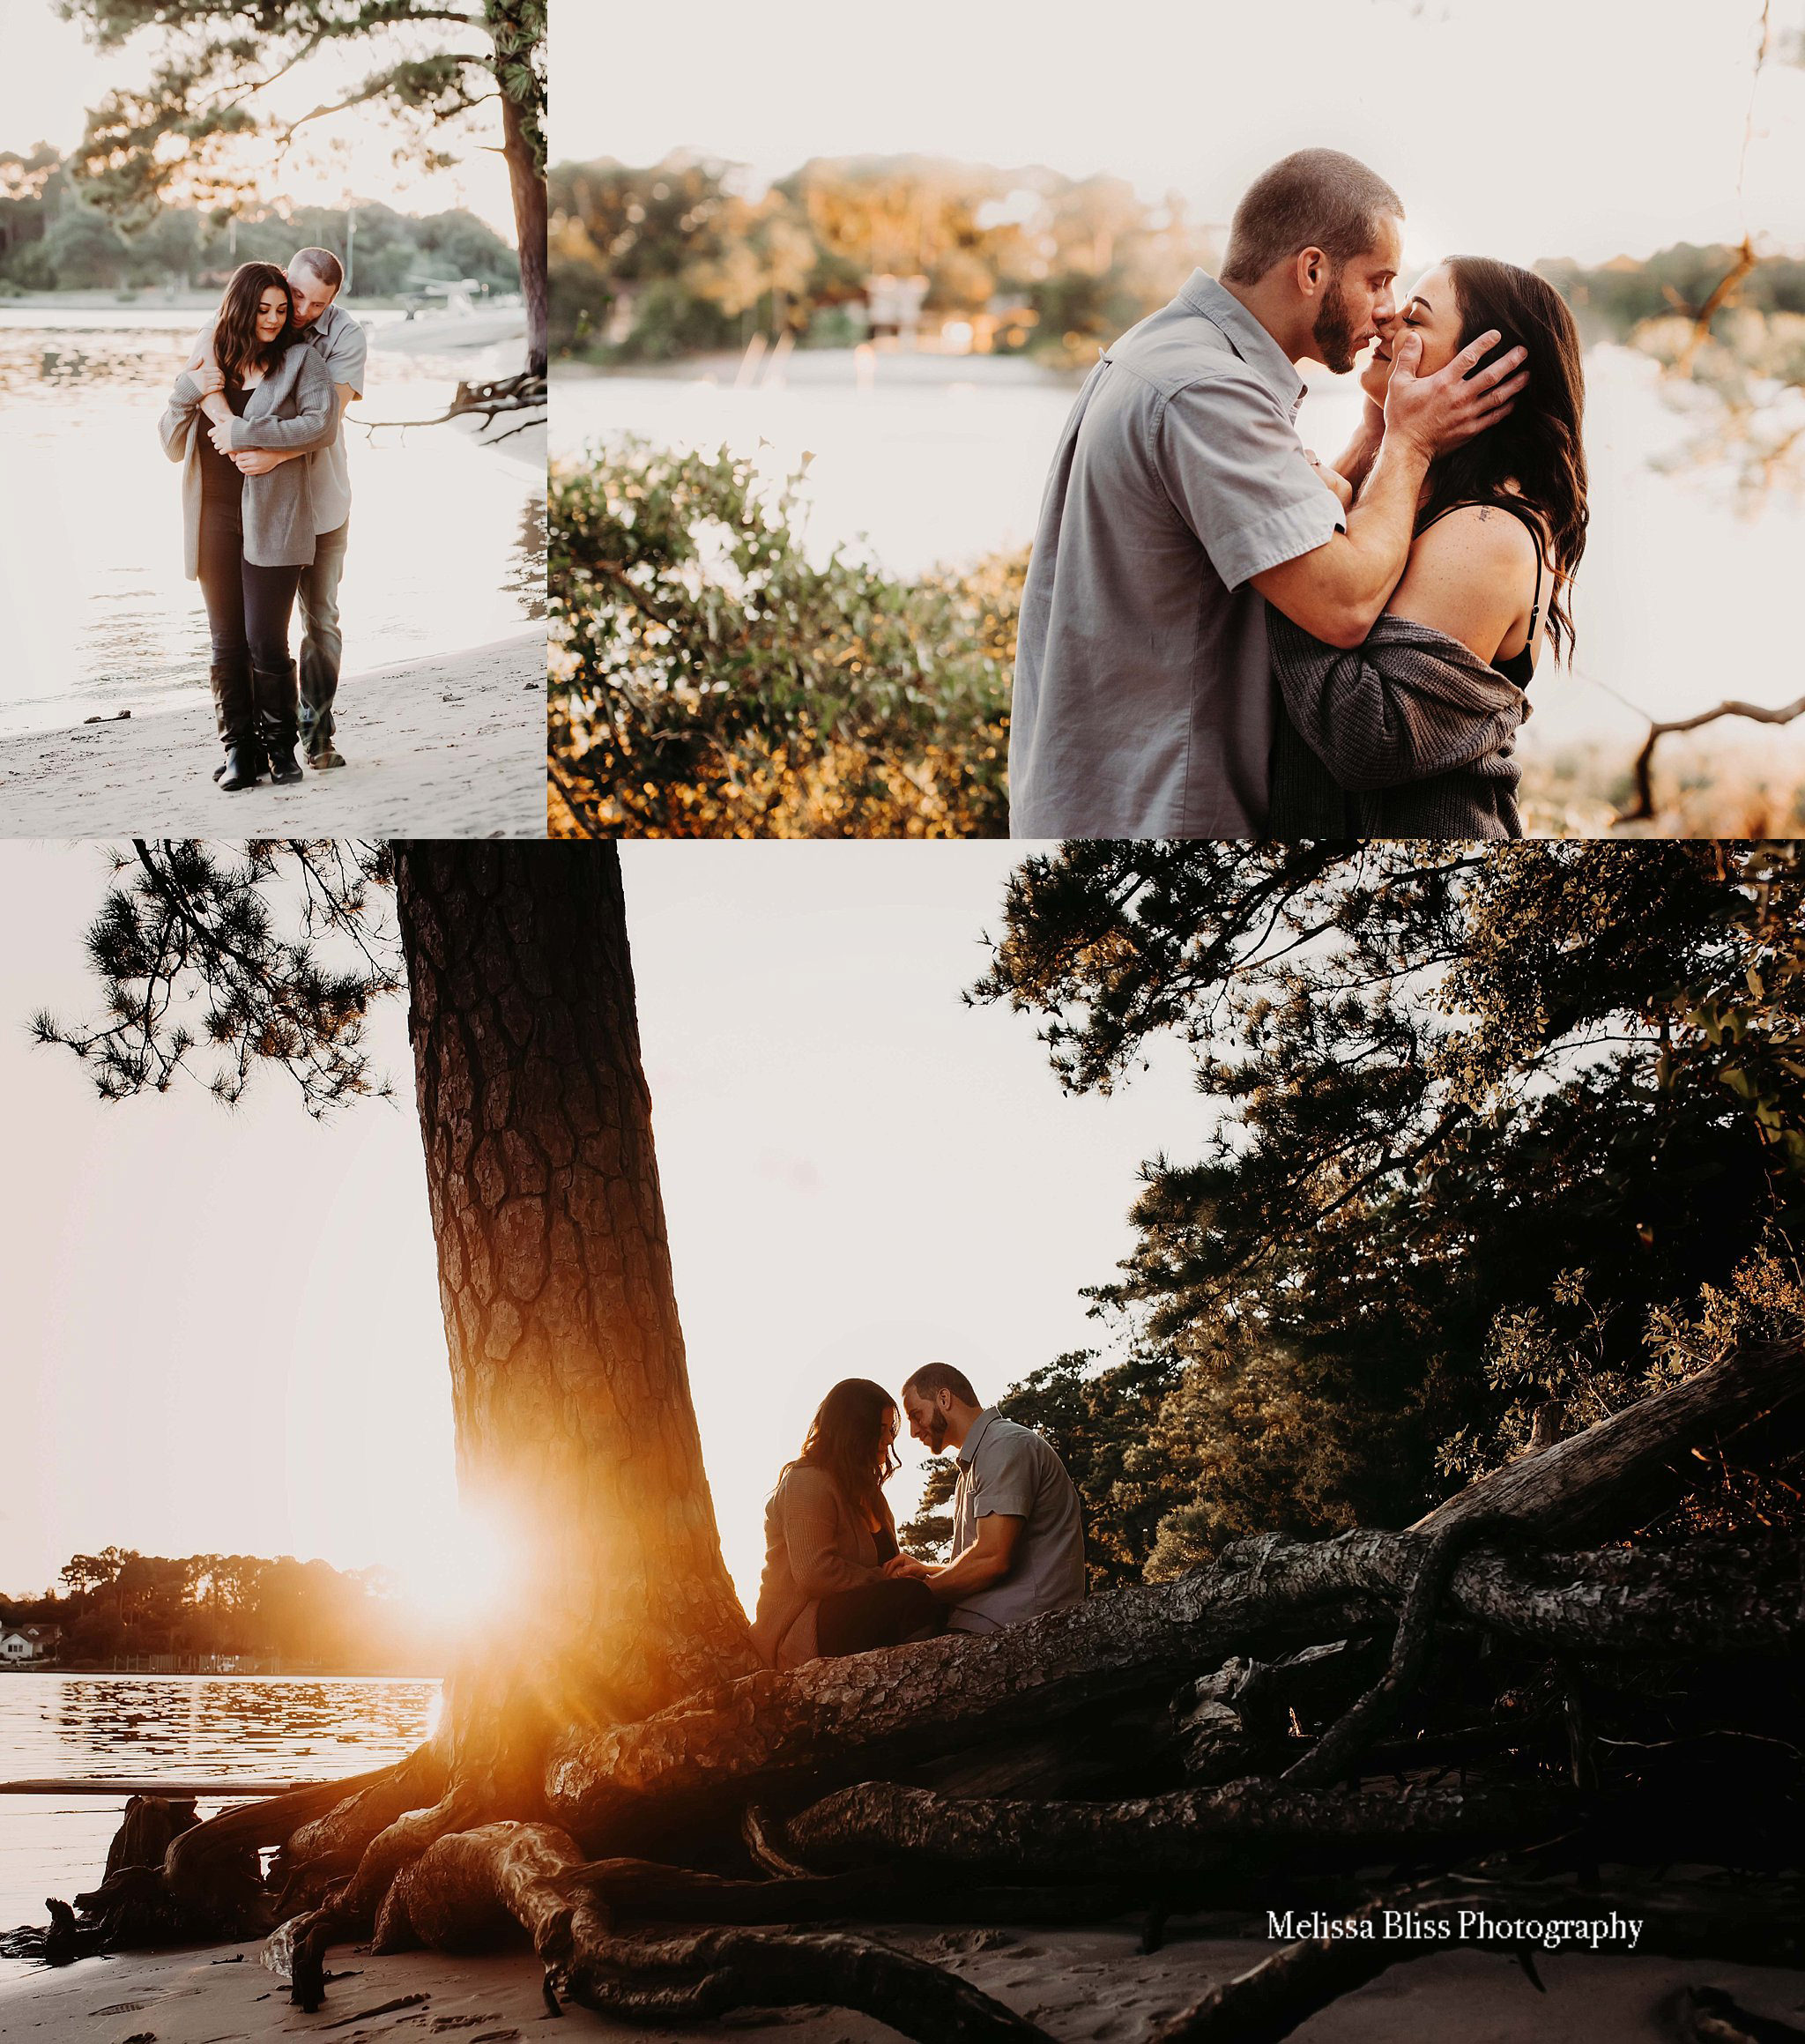 norfolk-virginia-beach-engagement-pictures-engagement-session-melissa-bliss-photography-portsmouth-wedding-photographer.jpg